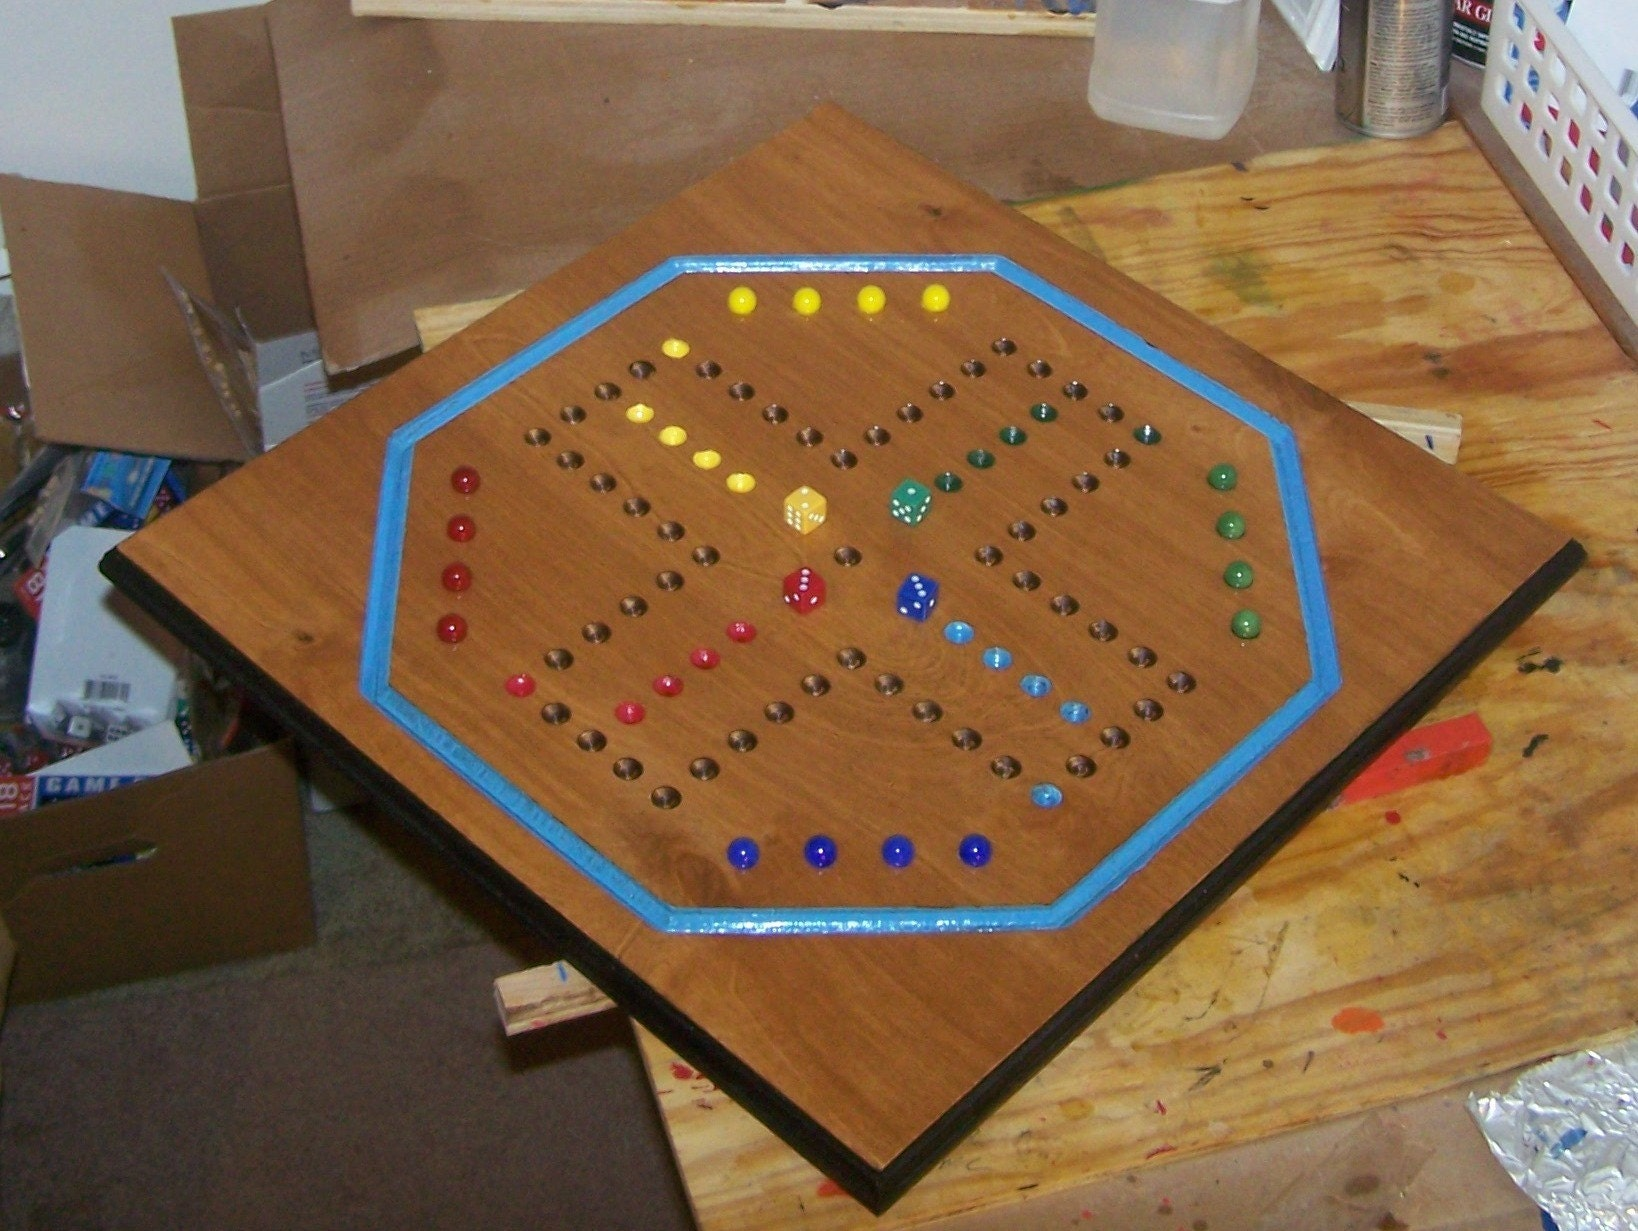 Wooden Aggravation Marble Game Board Free Software And Shareware